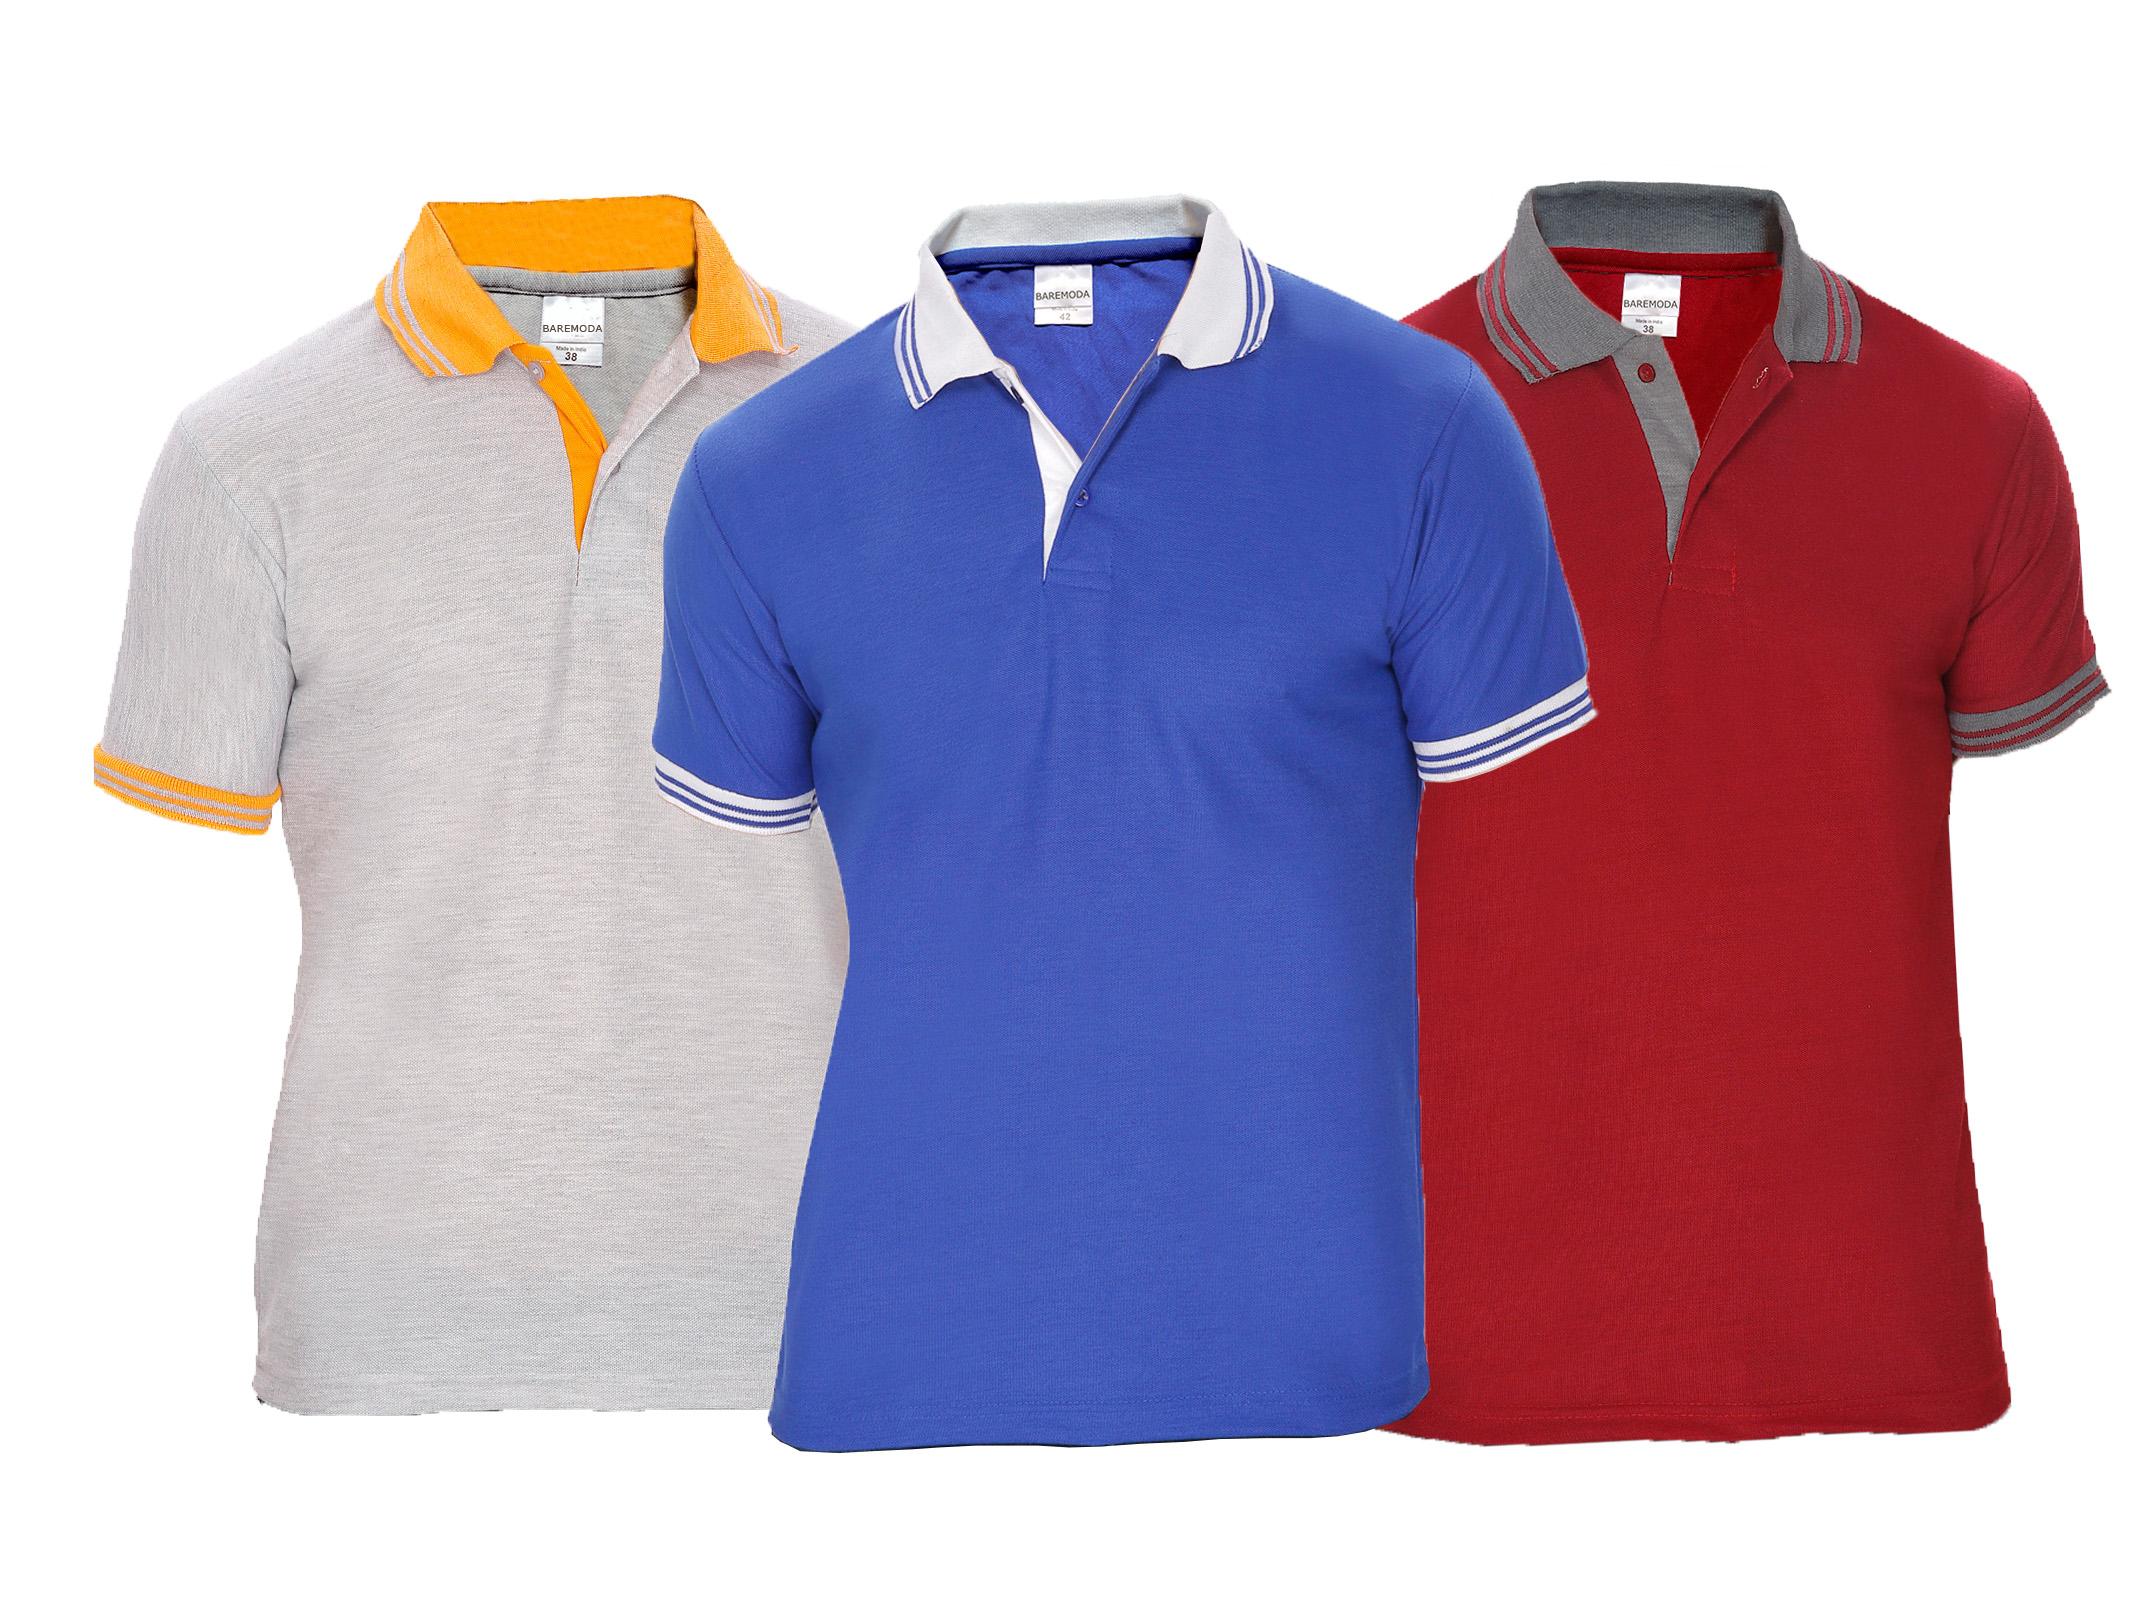 061c3af5b Polo T Shirts Combo Pack - DREAMWORKS